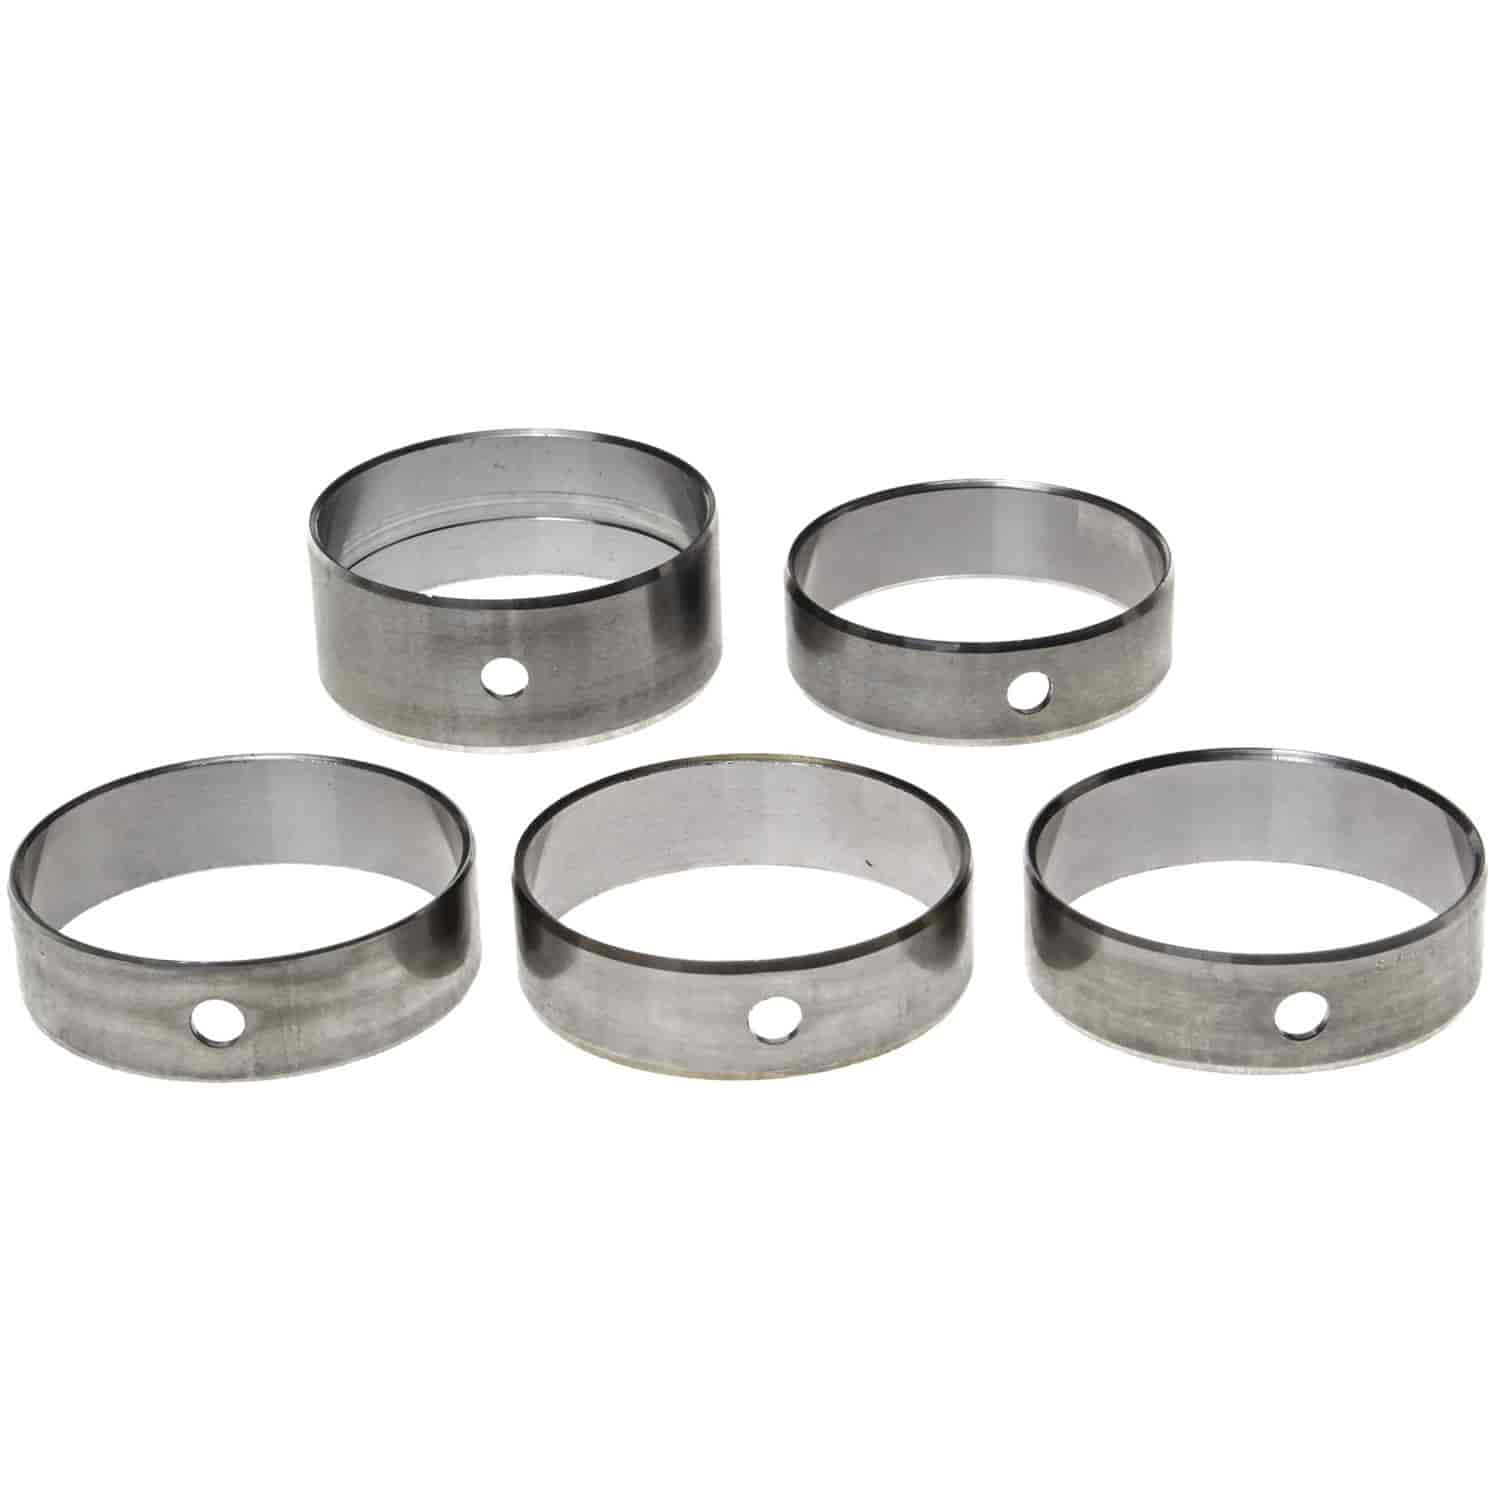 Clevite SH671S - Clevite 77 Ford High-Performance Bearings